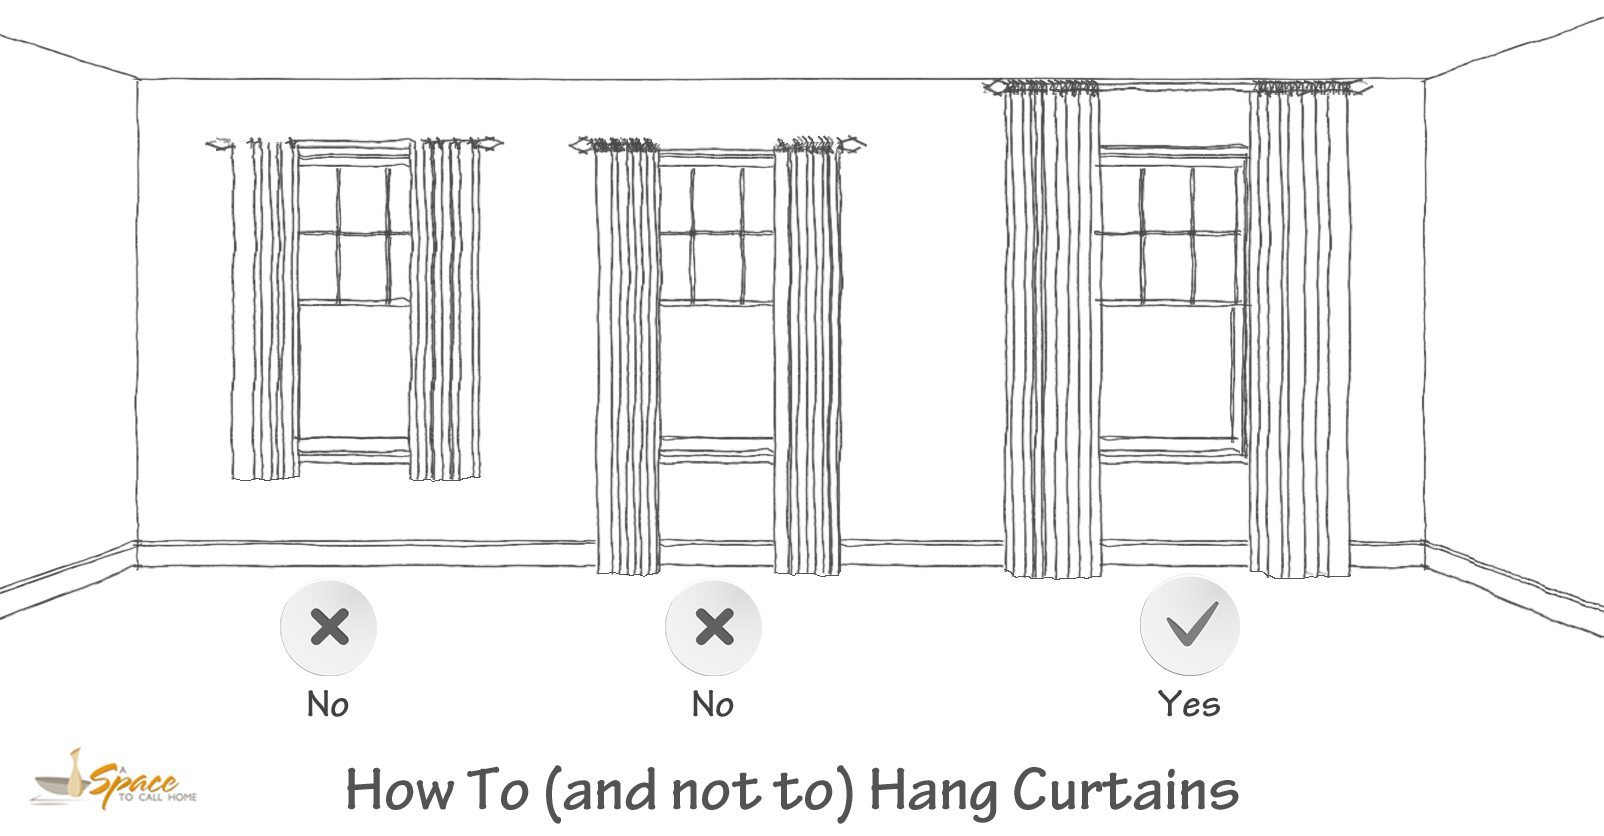 How To Hang Curtains Ilration